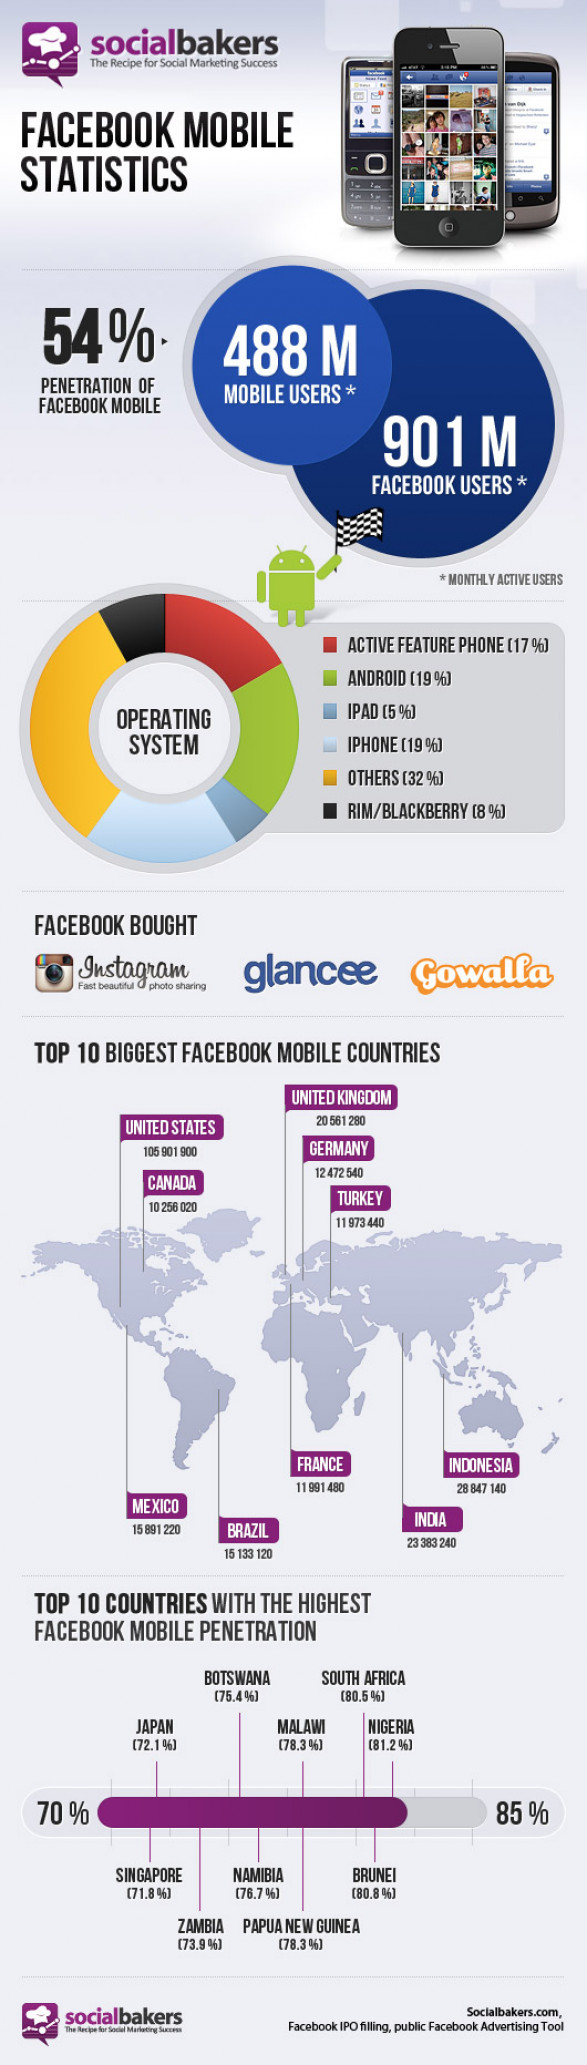 Facebook Hits 488 Million Mobile Users